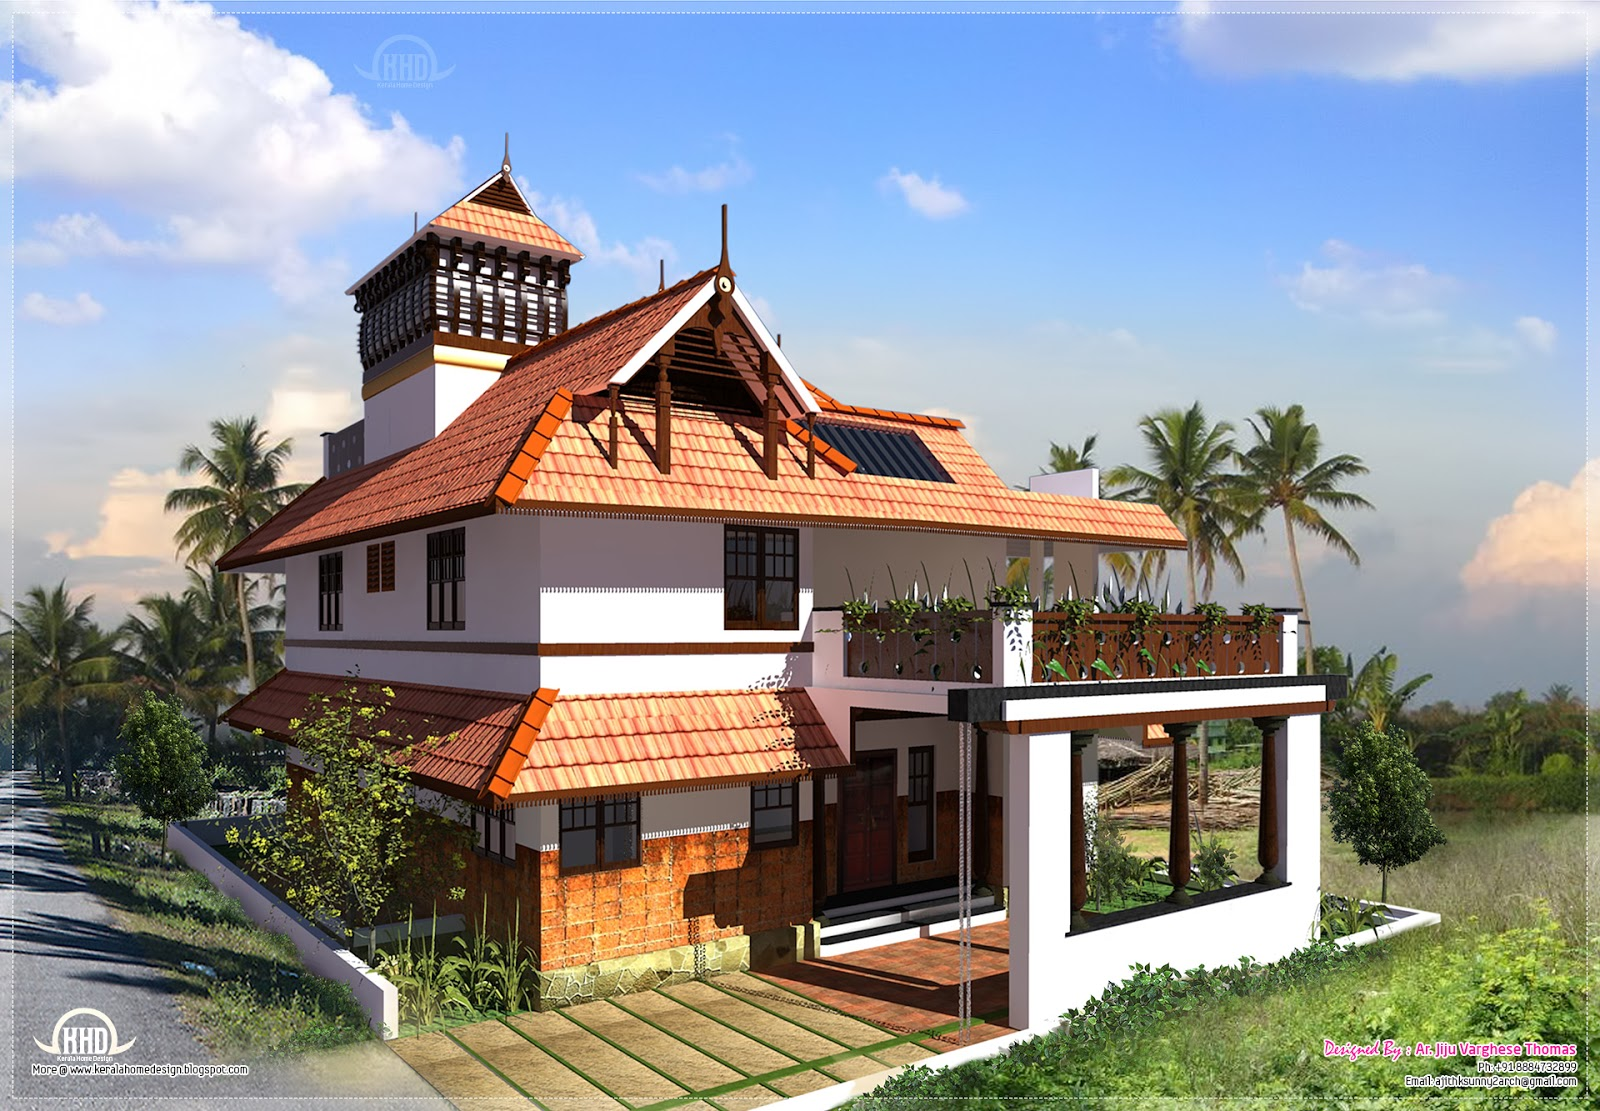 Kerala traditional house plans design joy studio design for Home designs kerala architects